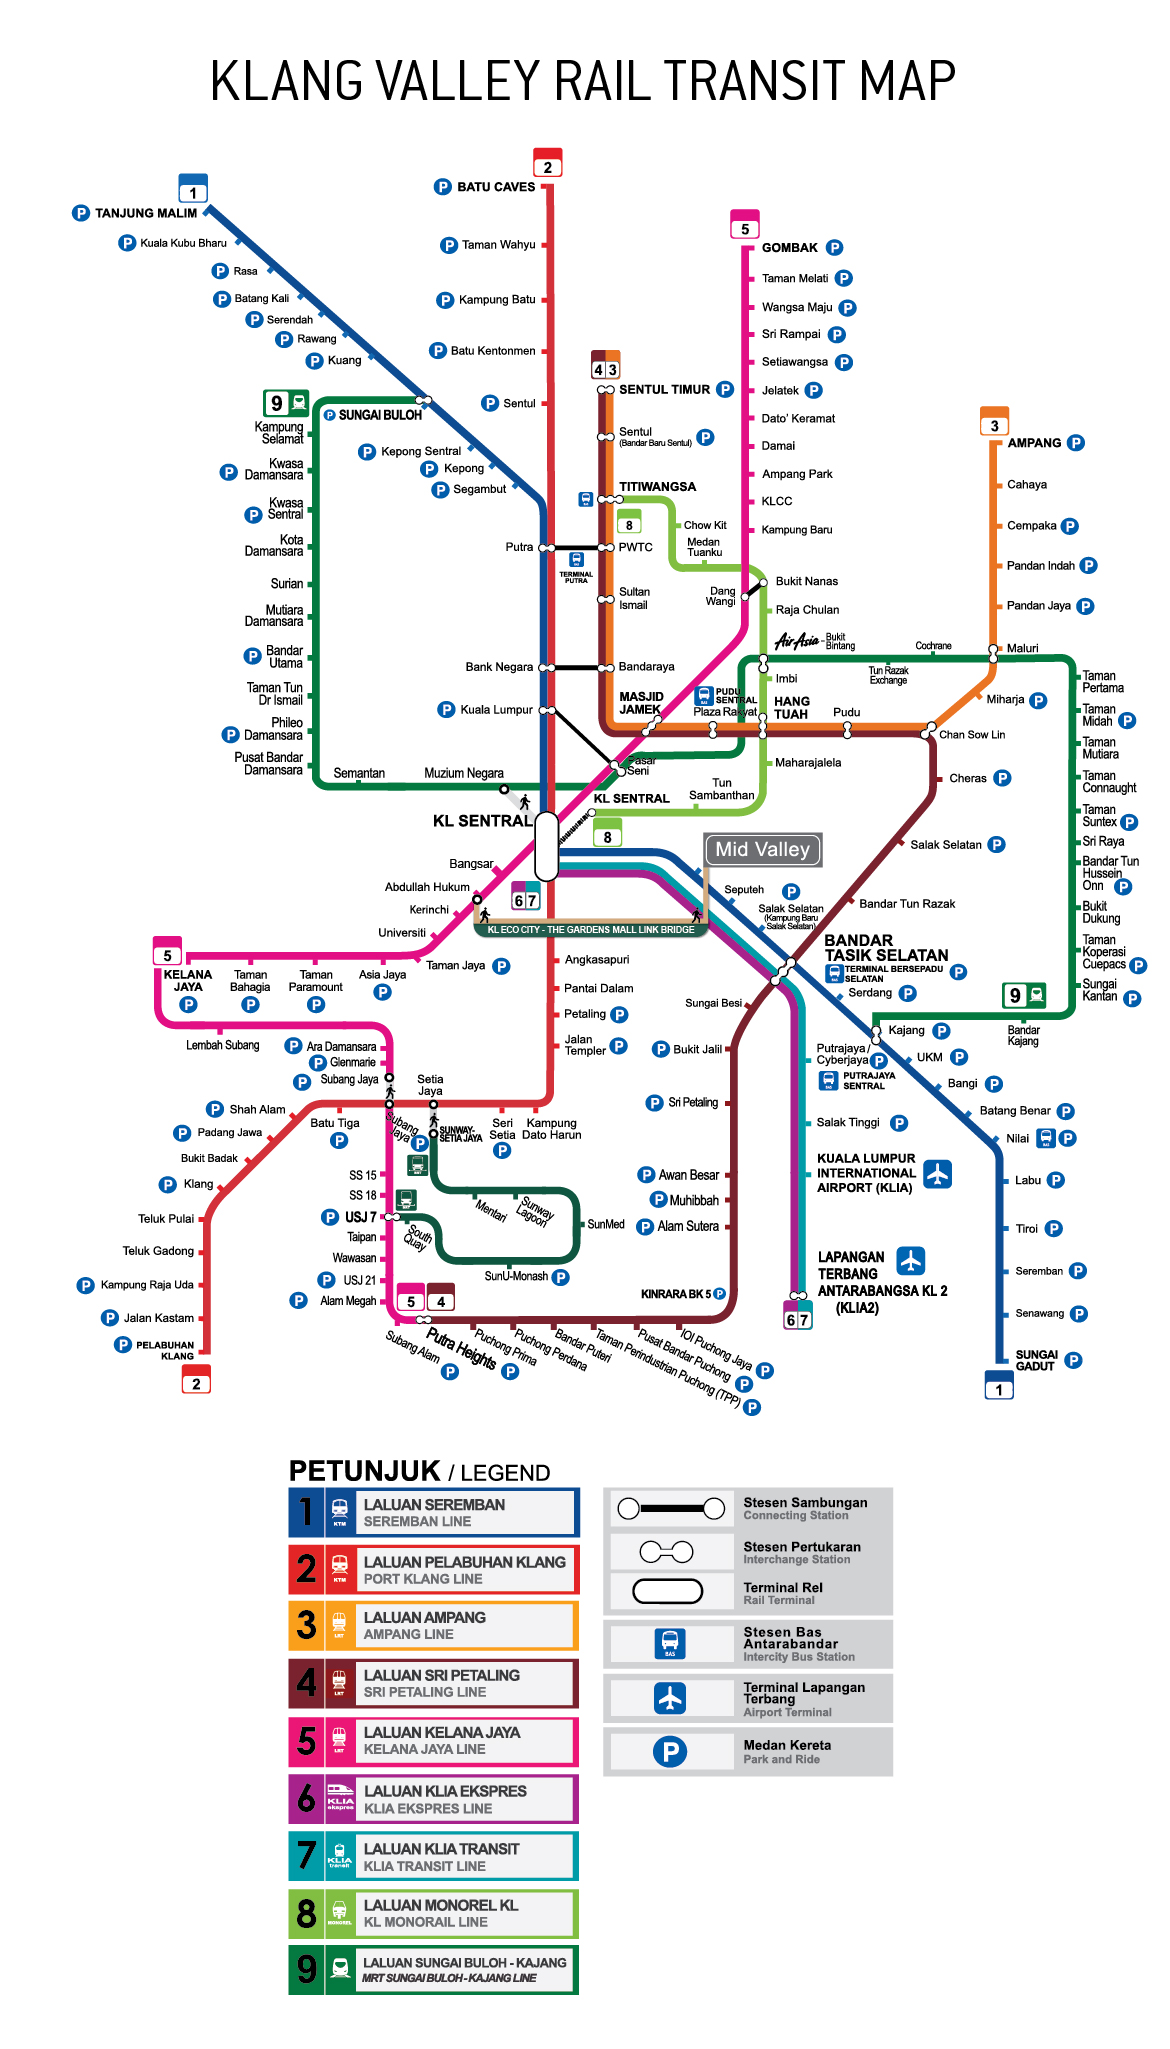 Map Of Asia Jaya Lrt Station.Getting Here By Train Mid Valley Megamall